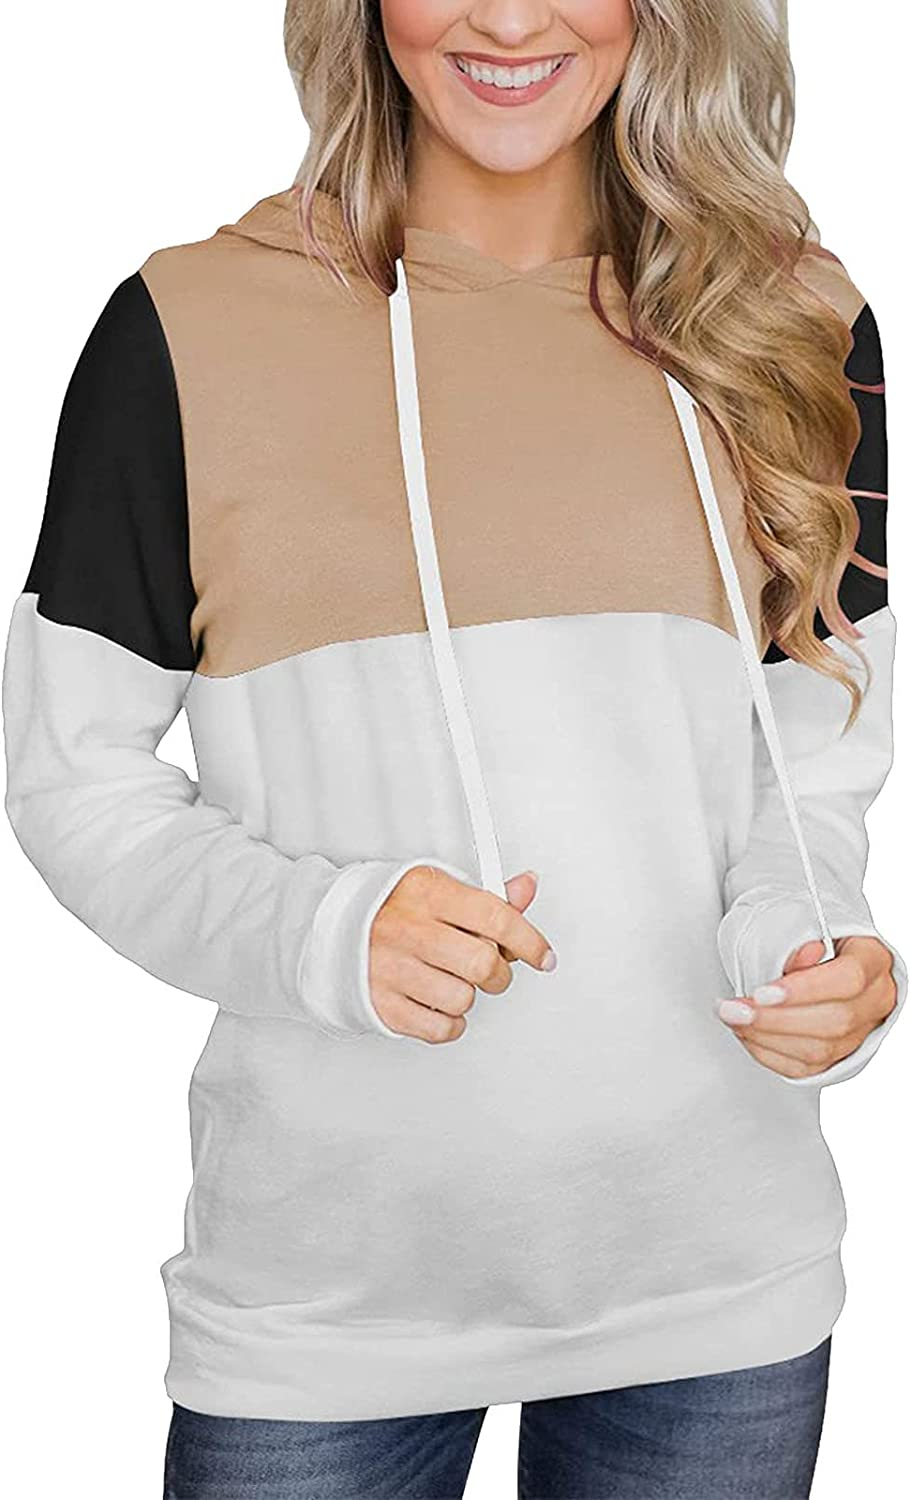 Women's Casual Color Block Hoodies Basic Long Sleeve Lightweight Pullover Loose Drawstring Sweatshirt with Pocket